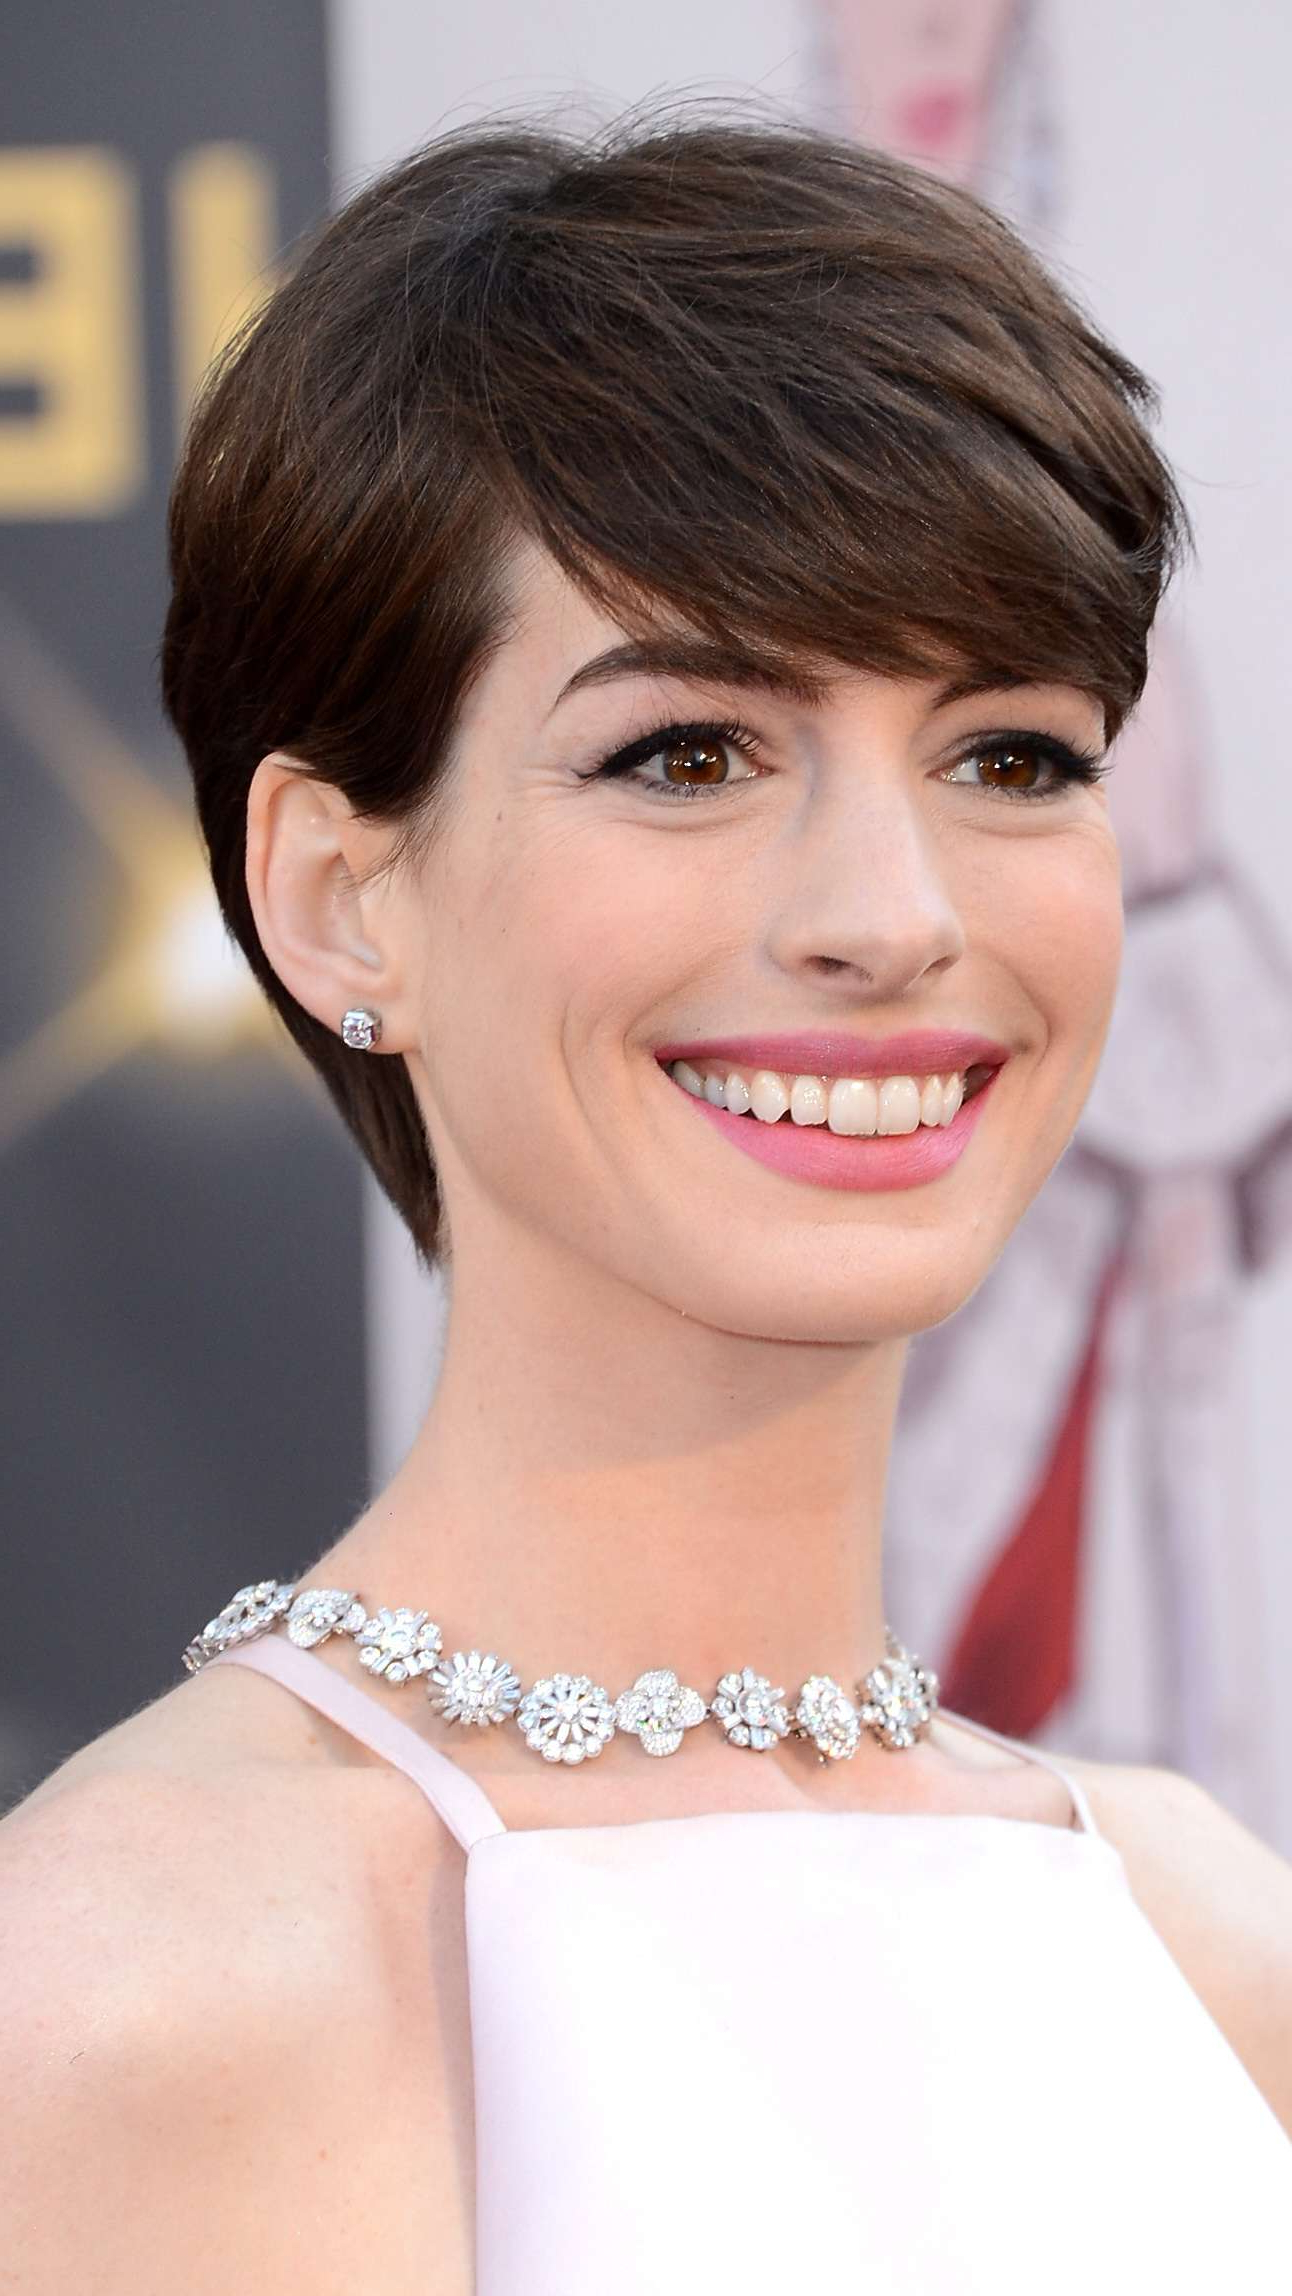 Find Out Full Gallery Of Awesome Pixie Haircut For Square Face with Short Hairstyles For A Square Face